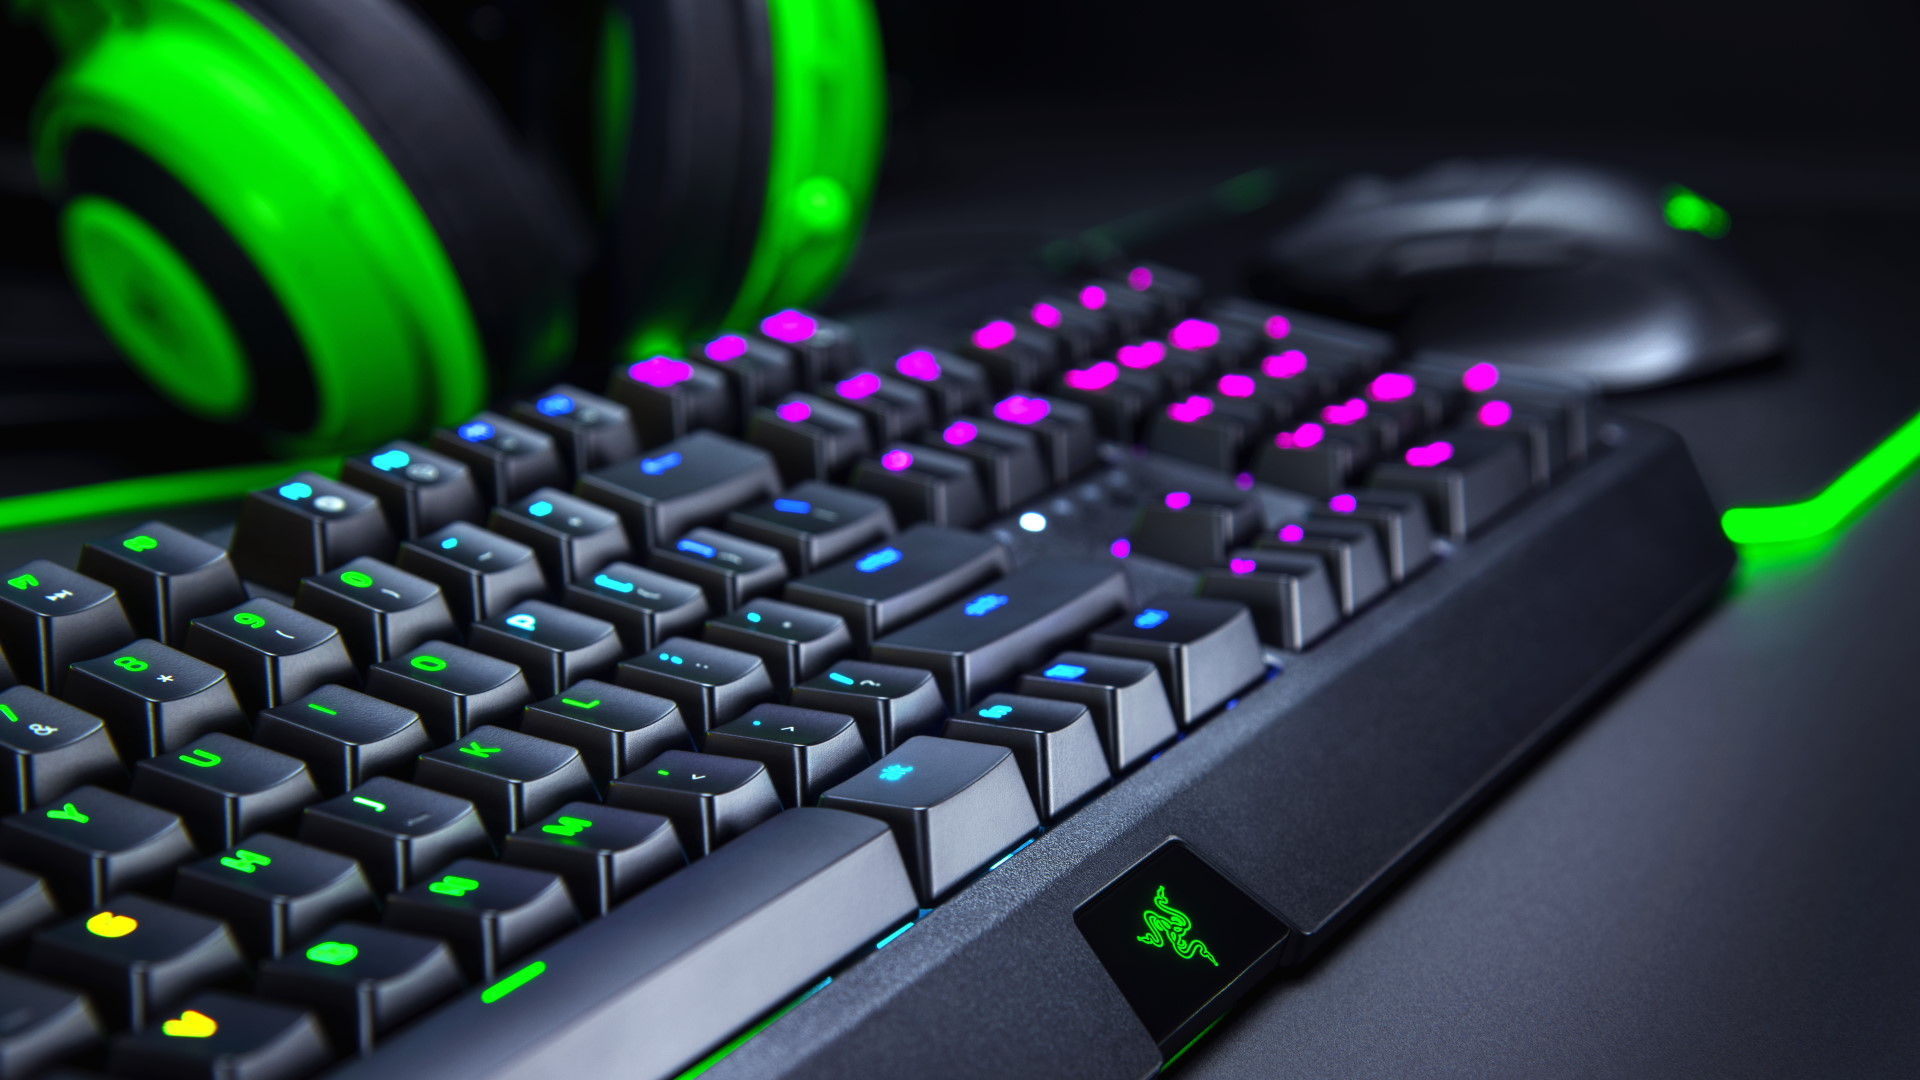 A photo of Razer PC peripherals